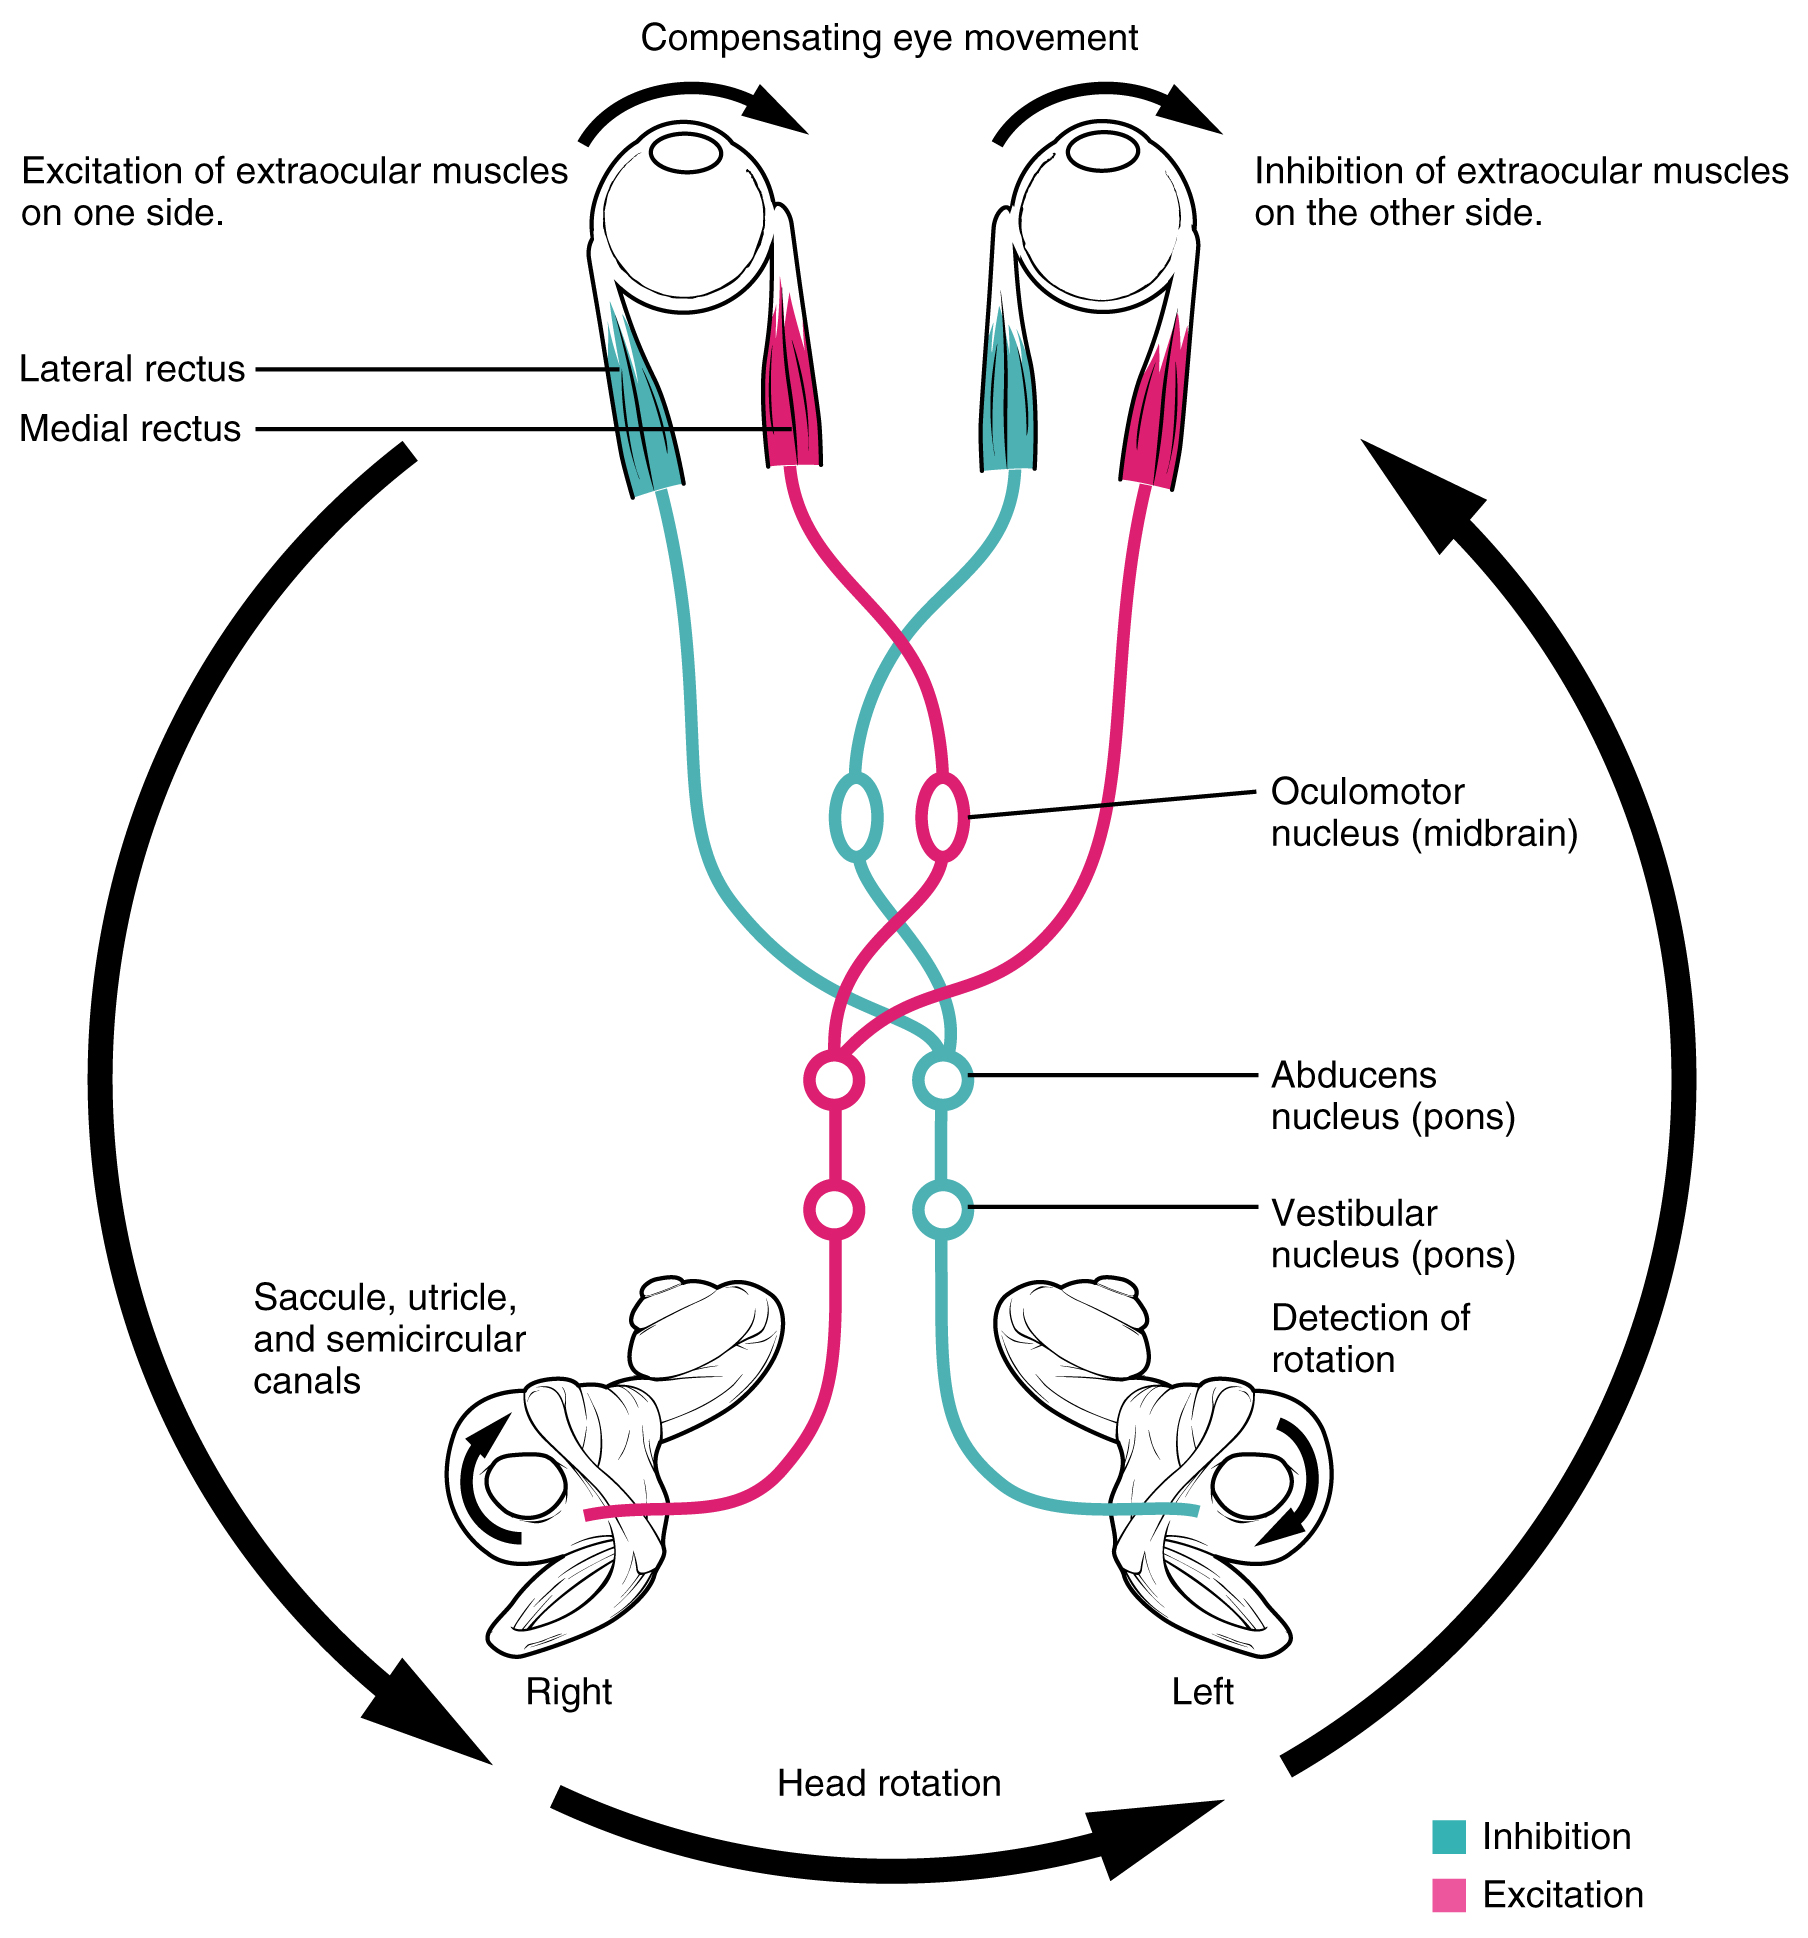 This image shows how the excitation of eye muscles on one side, the inhibition of these muscles on the other side, and the compensating eye movements work together in vestibular ocular reflex.